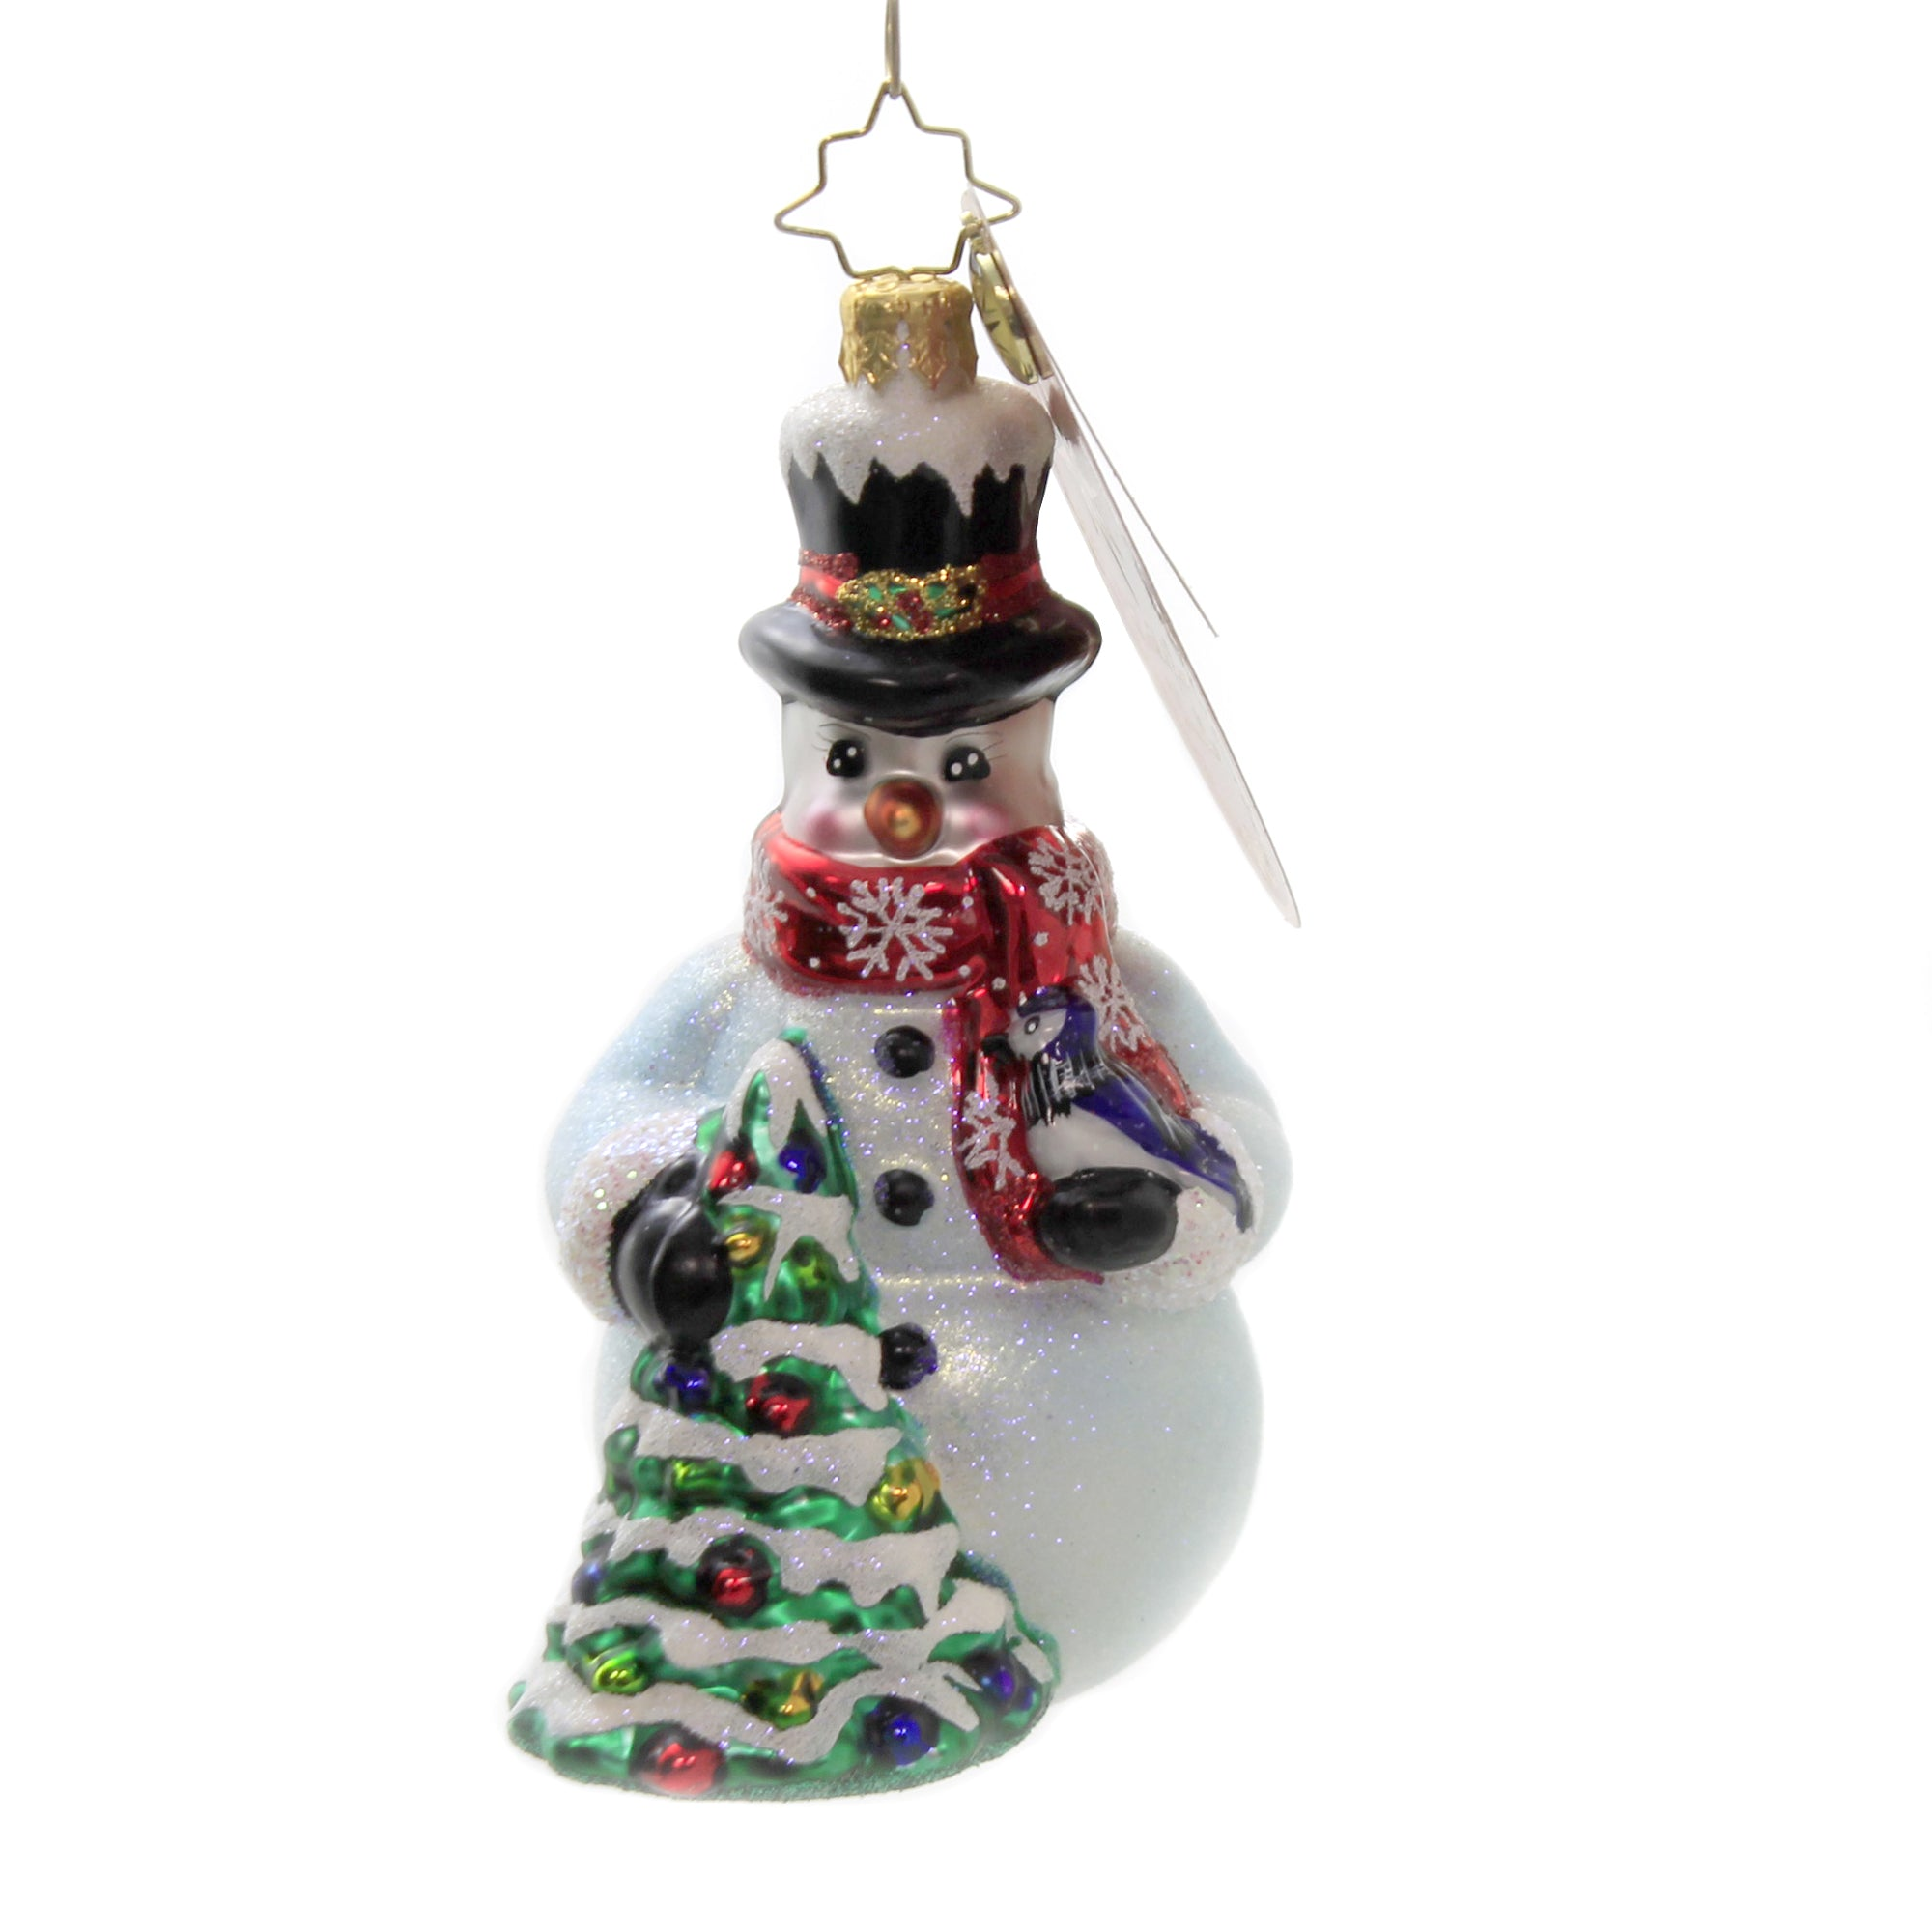 Christopher Radko A Bird In The Hand 1020364 Decorative Hanging Ornaments Sbk Gifts Sbkgifts Com